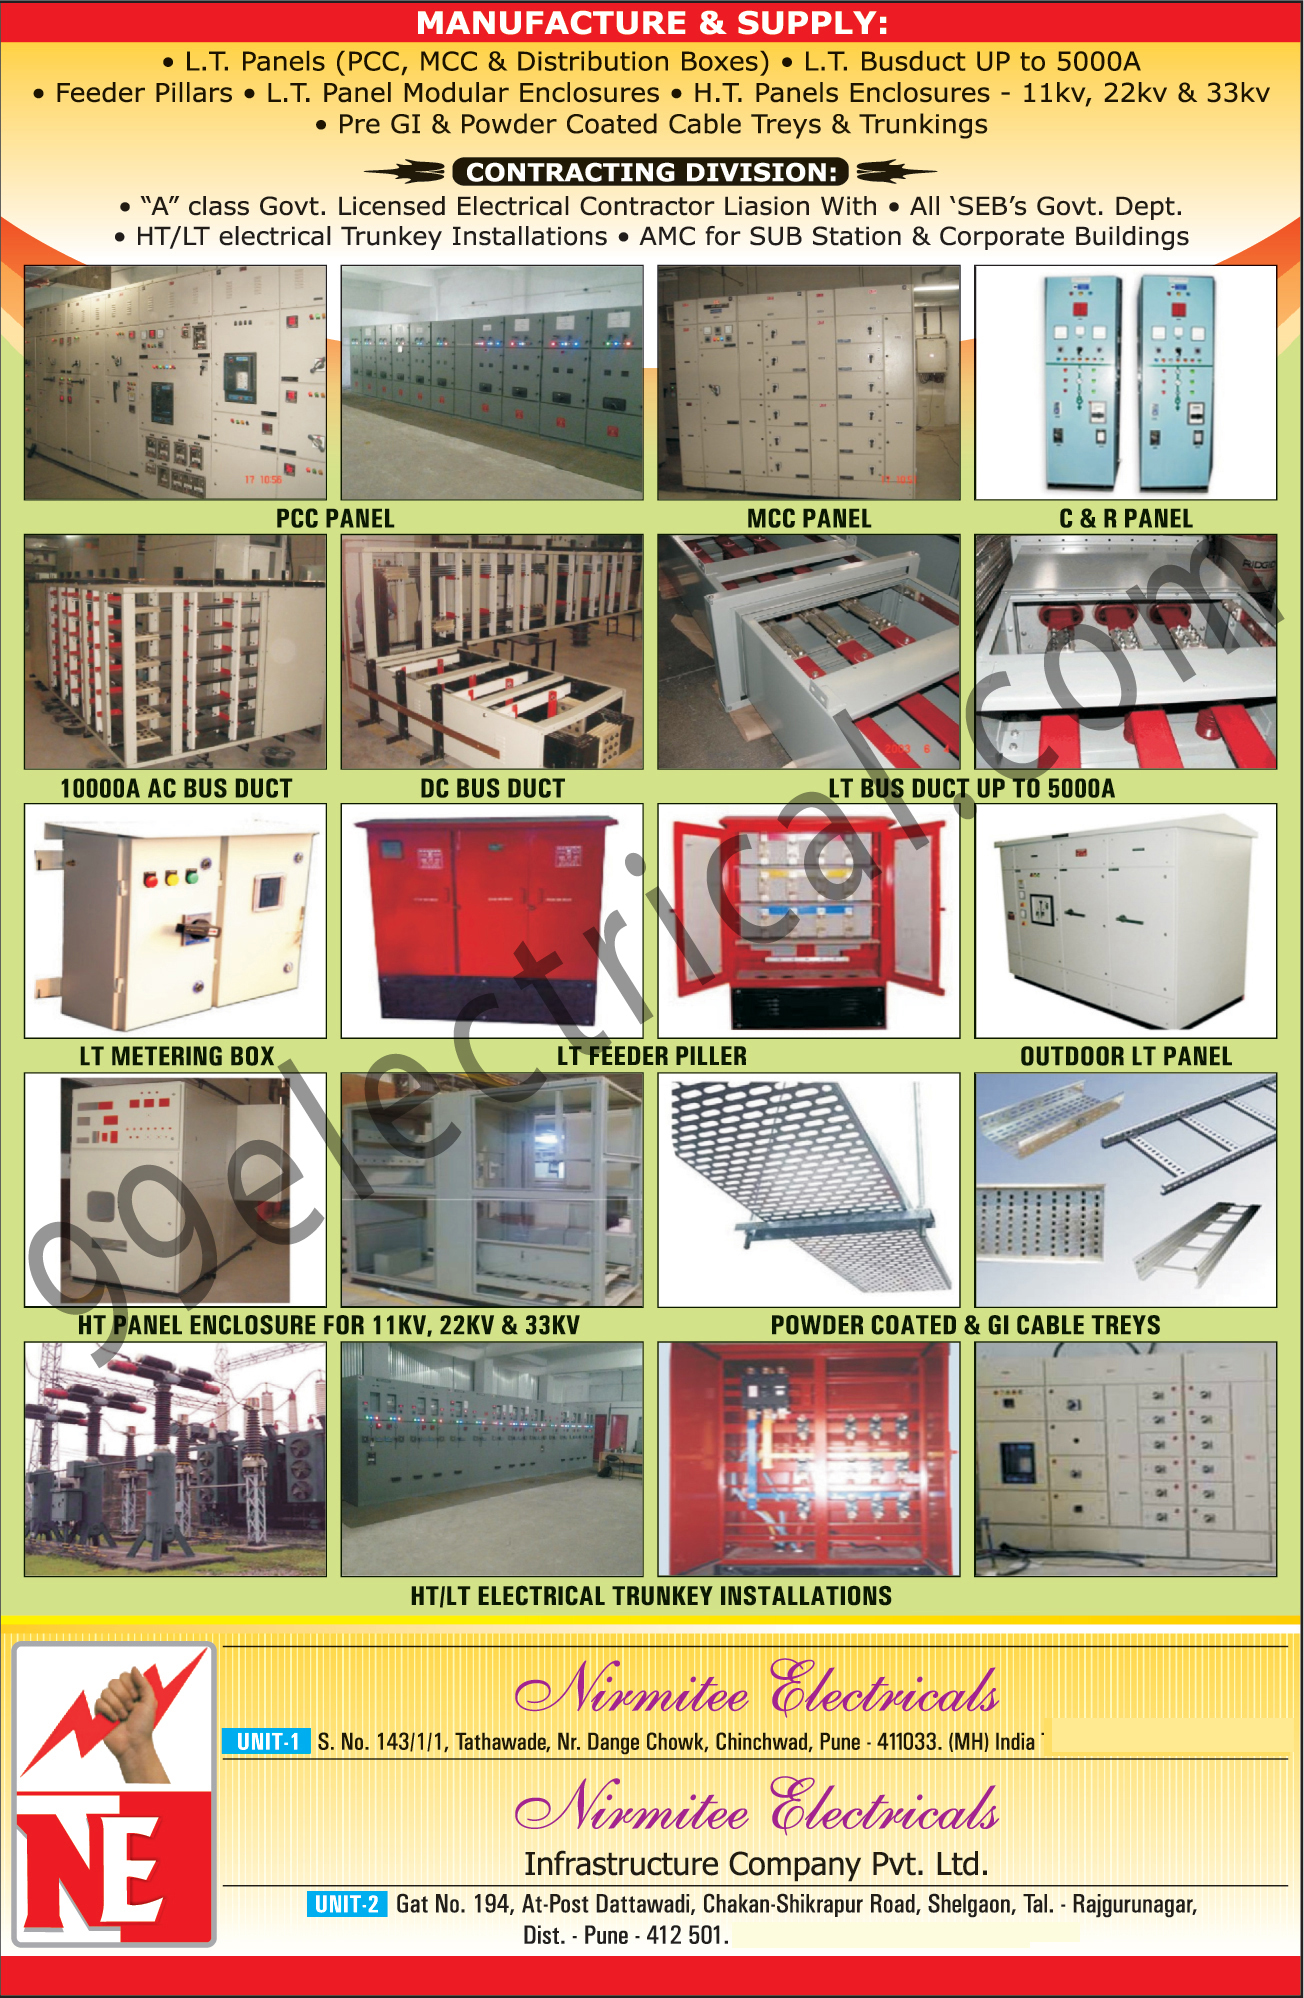 PCC Panel, MCC Panel, CR Panel, AC Bus Duct, DC Bus Duct, LT Bus Duct, LT Metering Duct, LT Feeder Piller, Outdoor Lt Panel, HT Panel Enclosure, Powder Coated, GI Cable Treys, Electrical Trunkey Installations, LT Panels, Panel Modular Enclousers,Electrical Products, Busduct, Distribution Boxes, Endosure, Electrical Panel, Powder Coated Trays, GI Cable Trays, HT Electrical Trunkey Insulations, LT Electrical Trunkey Insulations